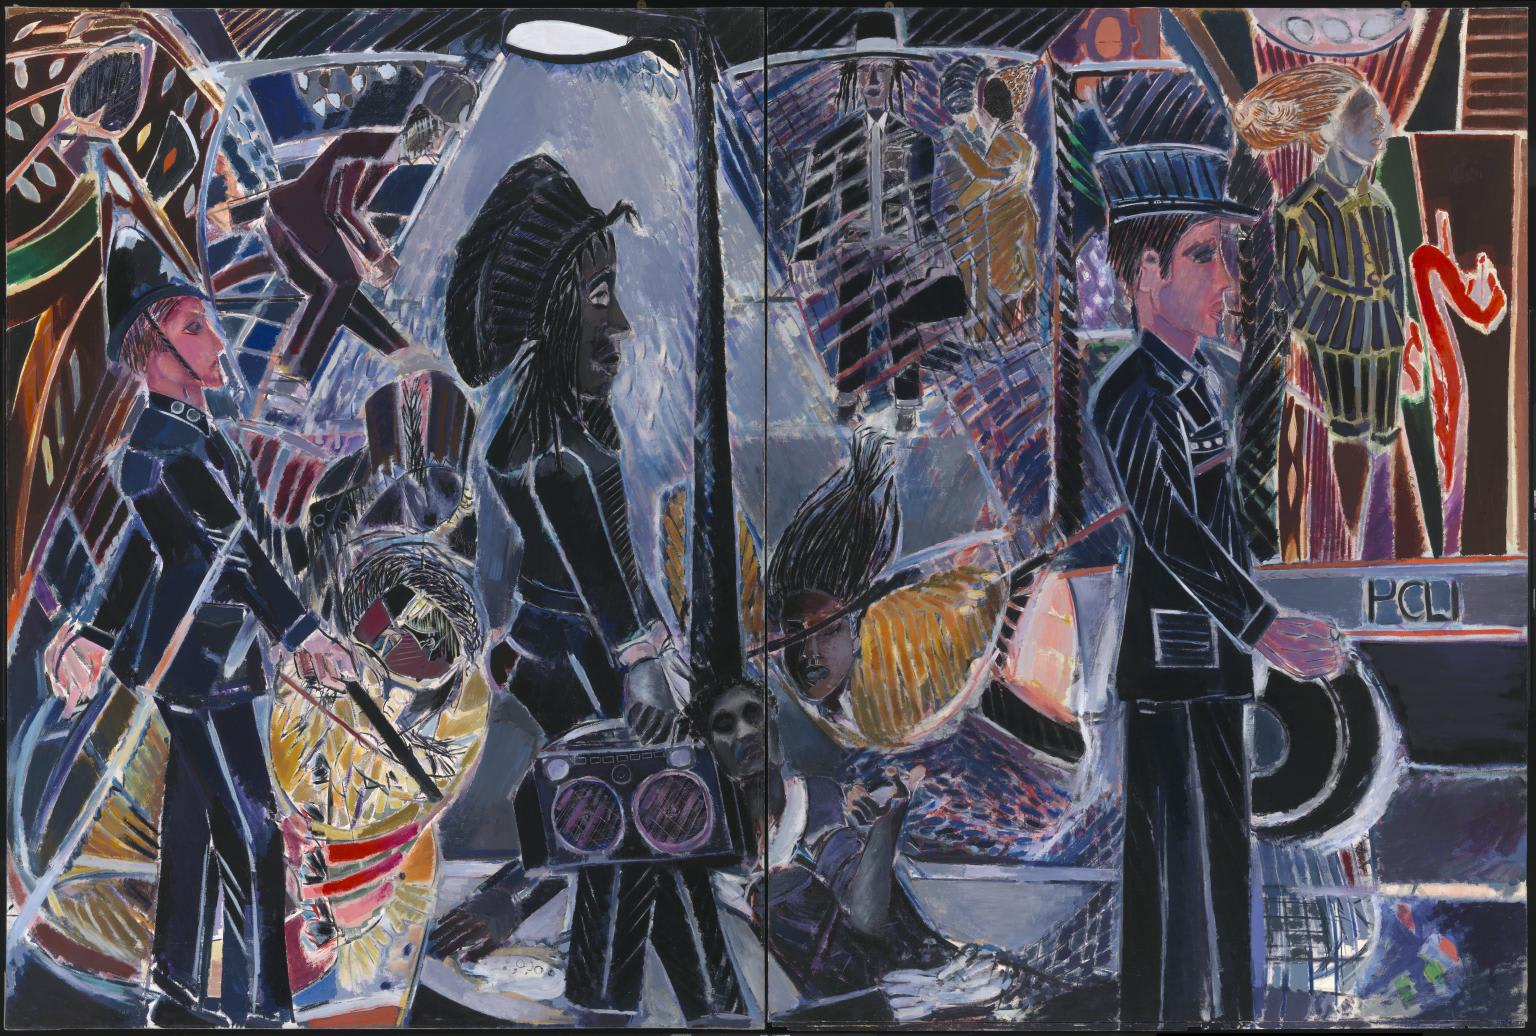 <p>Denzil Forrester, 'Three Wicked Men', 1982, Tate Collection, UK.</p>